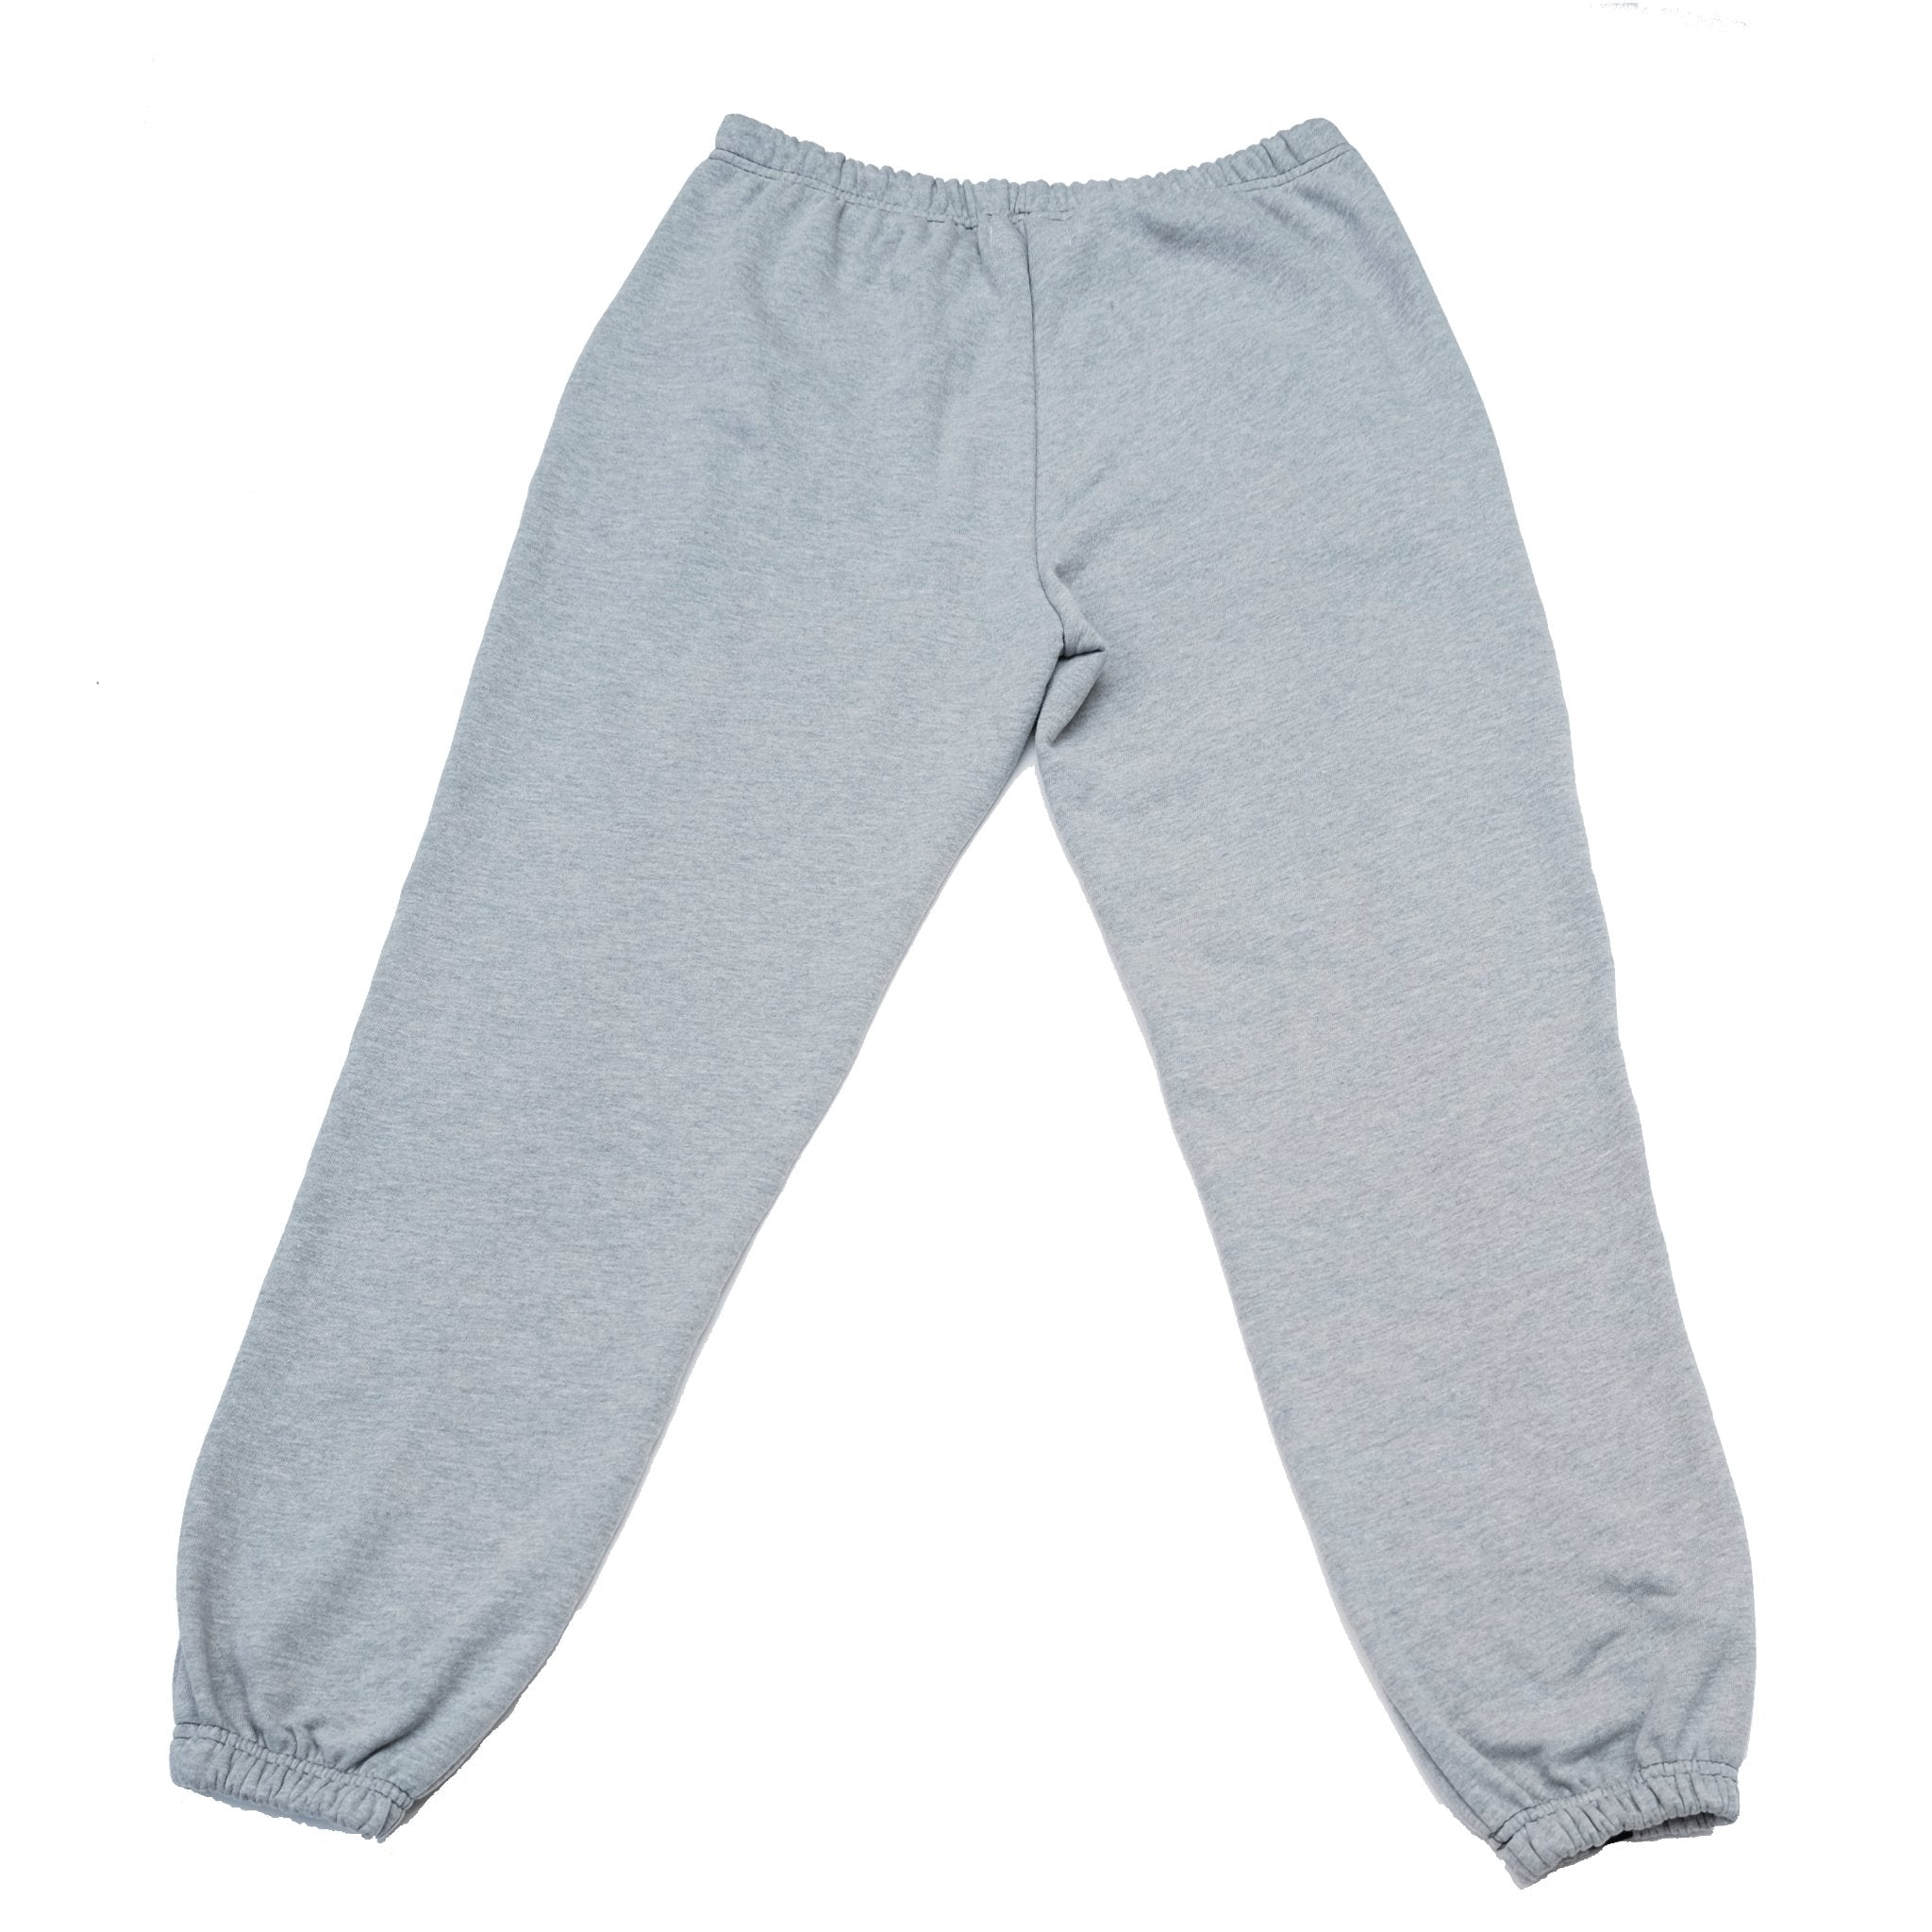 Cogs Shop | Don't Watch Face | Scarborough Uniform Sweatpants back